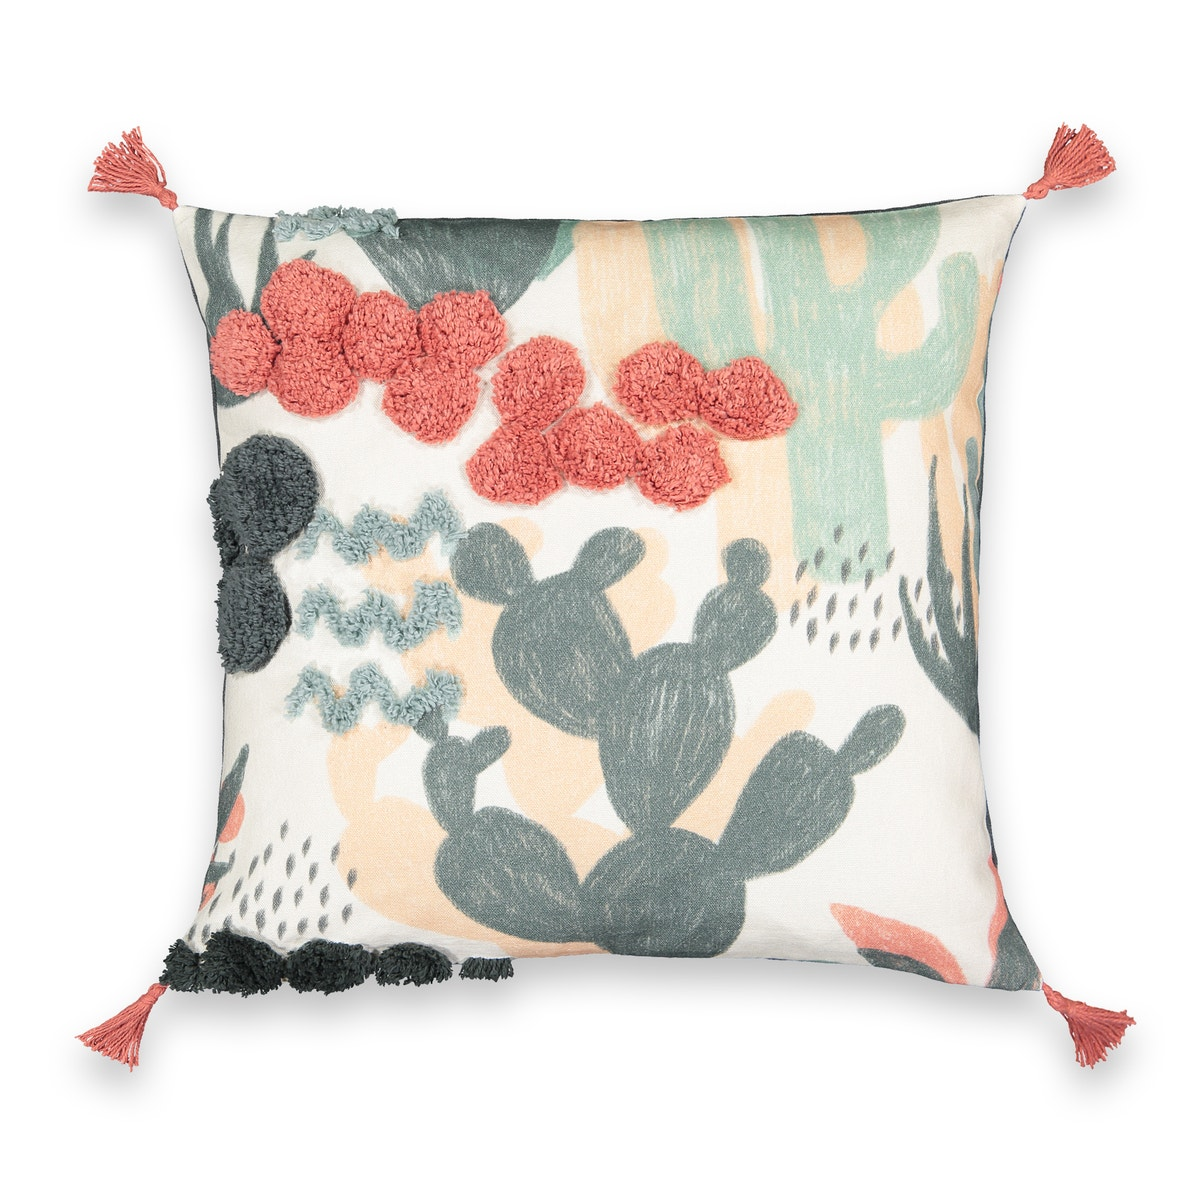 Benoti Cushion Cover